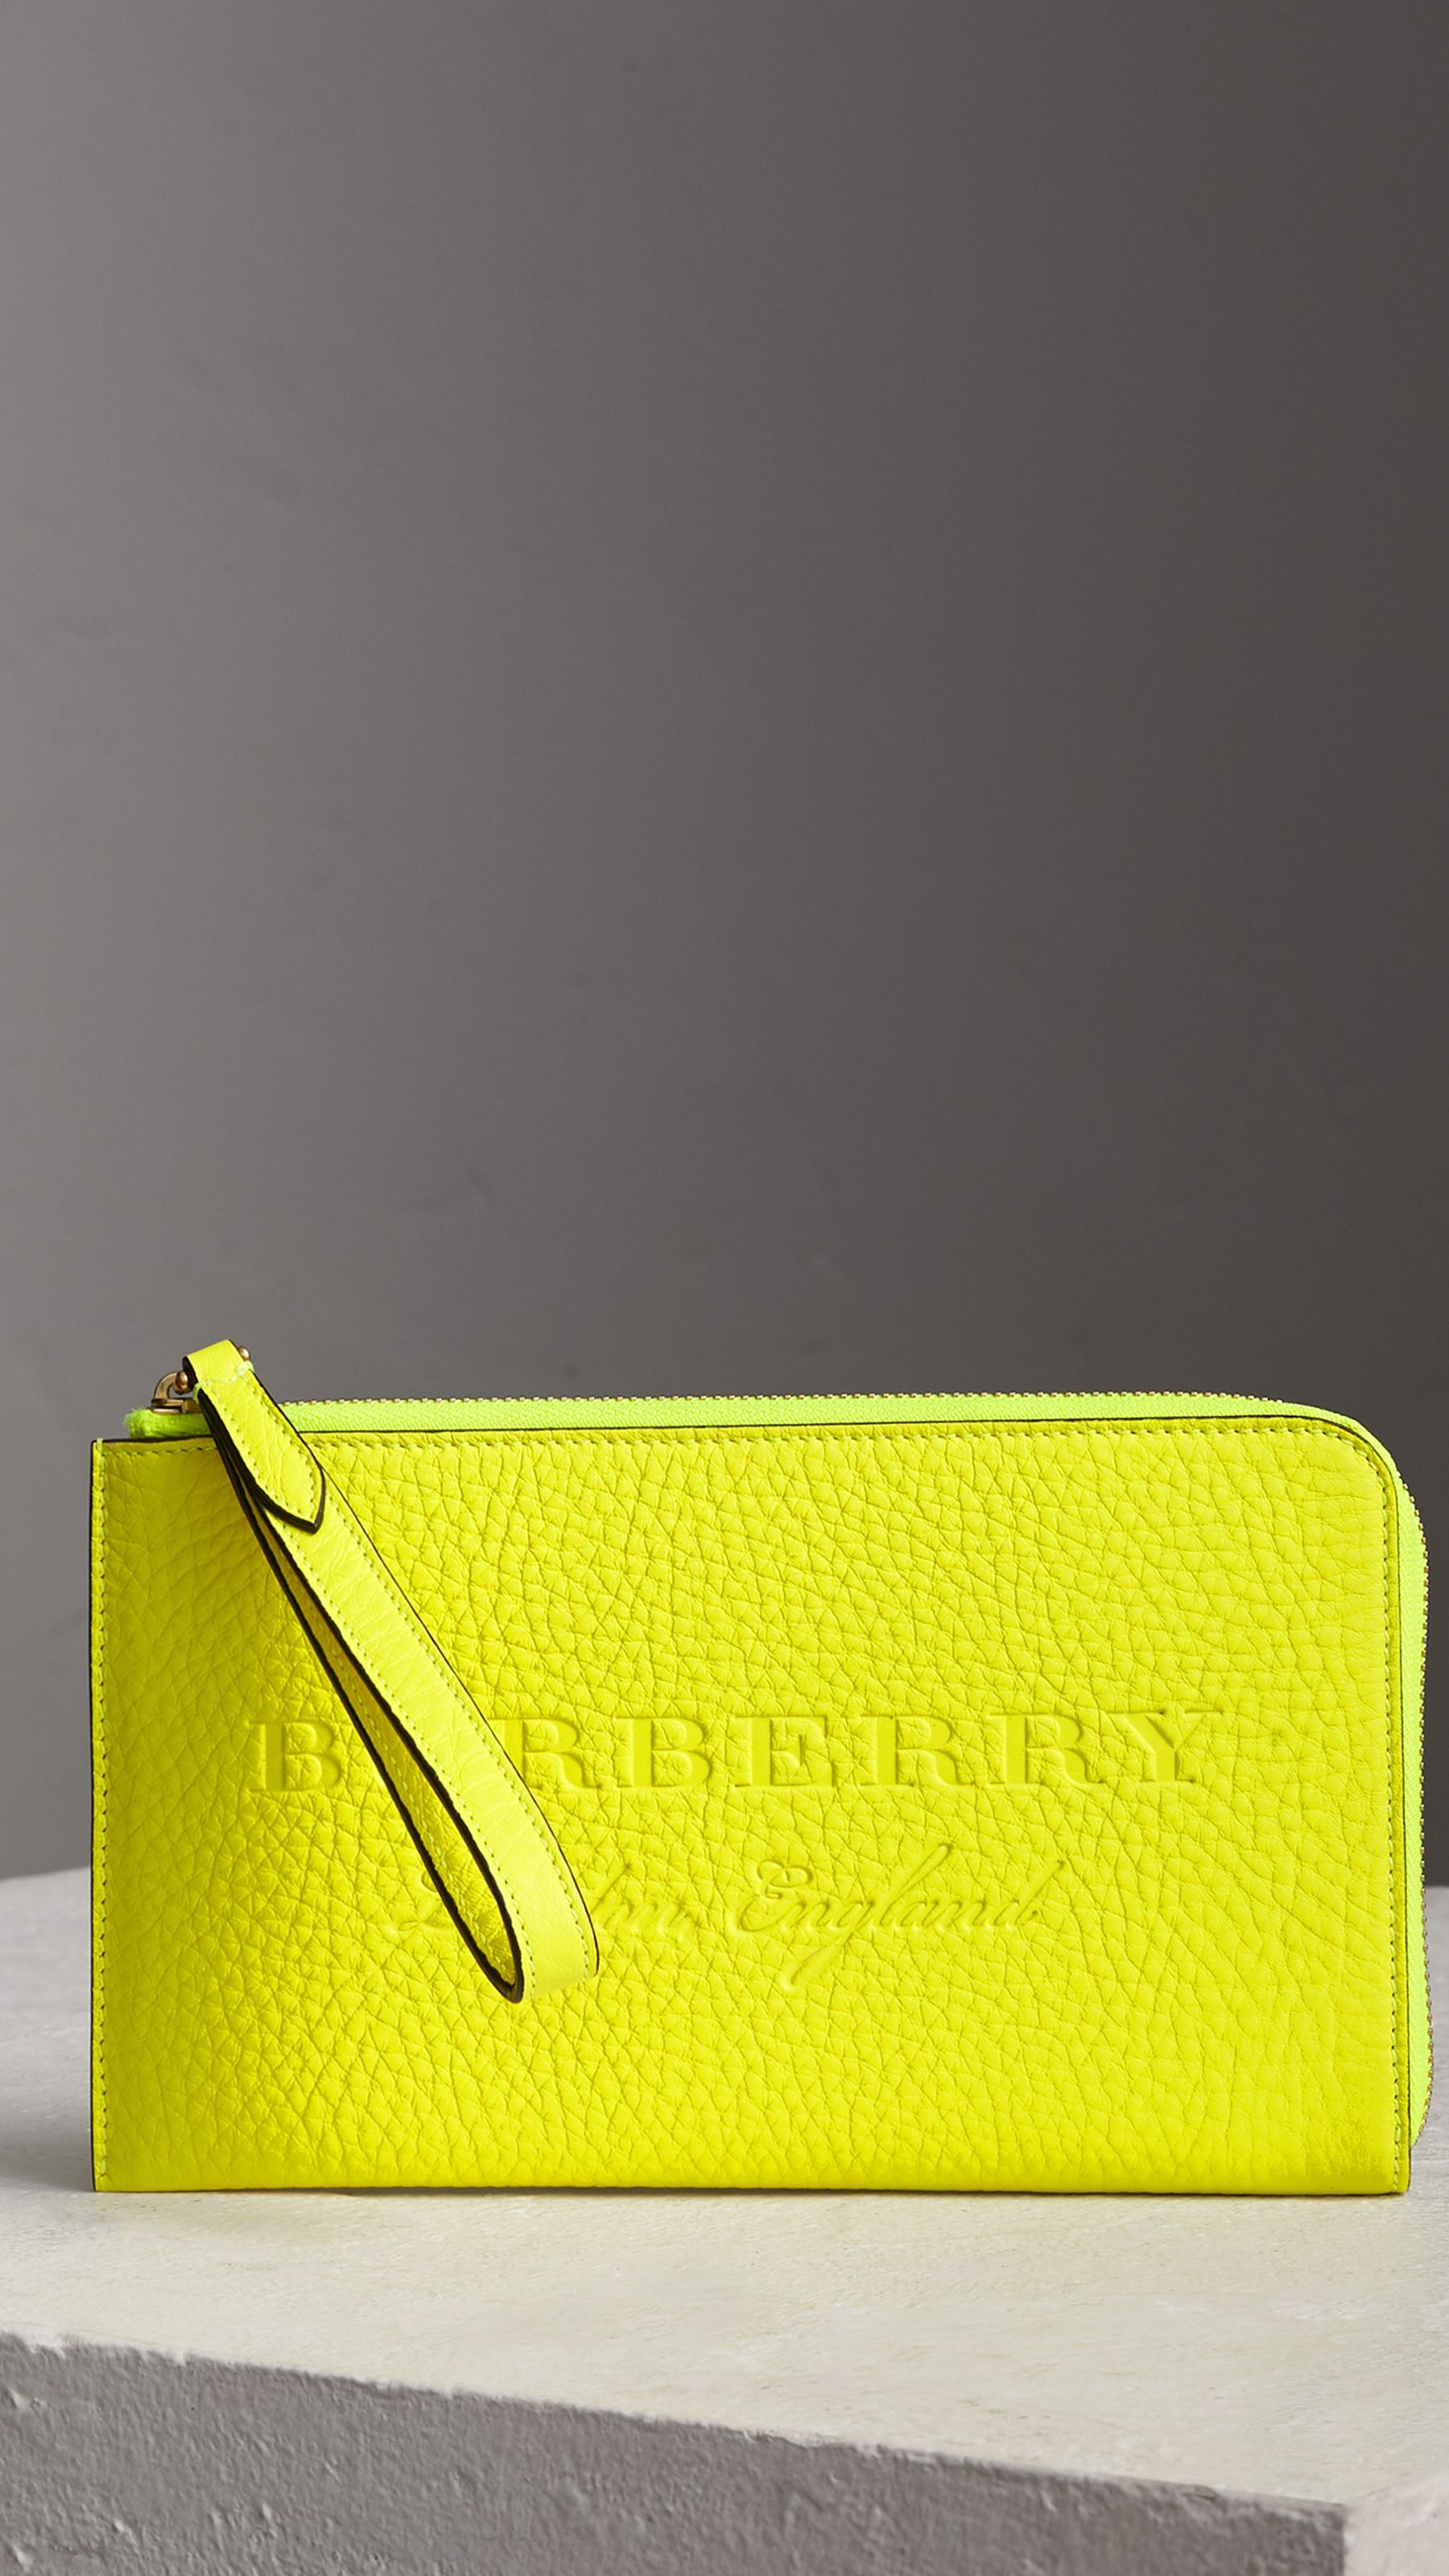 b3612ded38f9e Embossed Neon Leather Travel Wallet in Bright Yellow